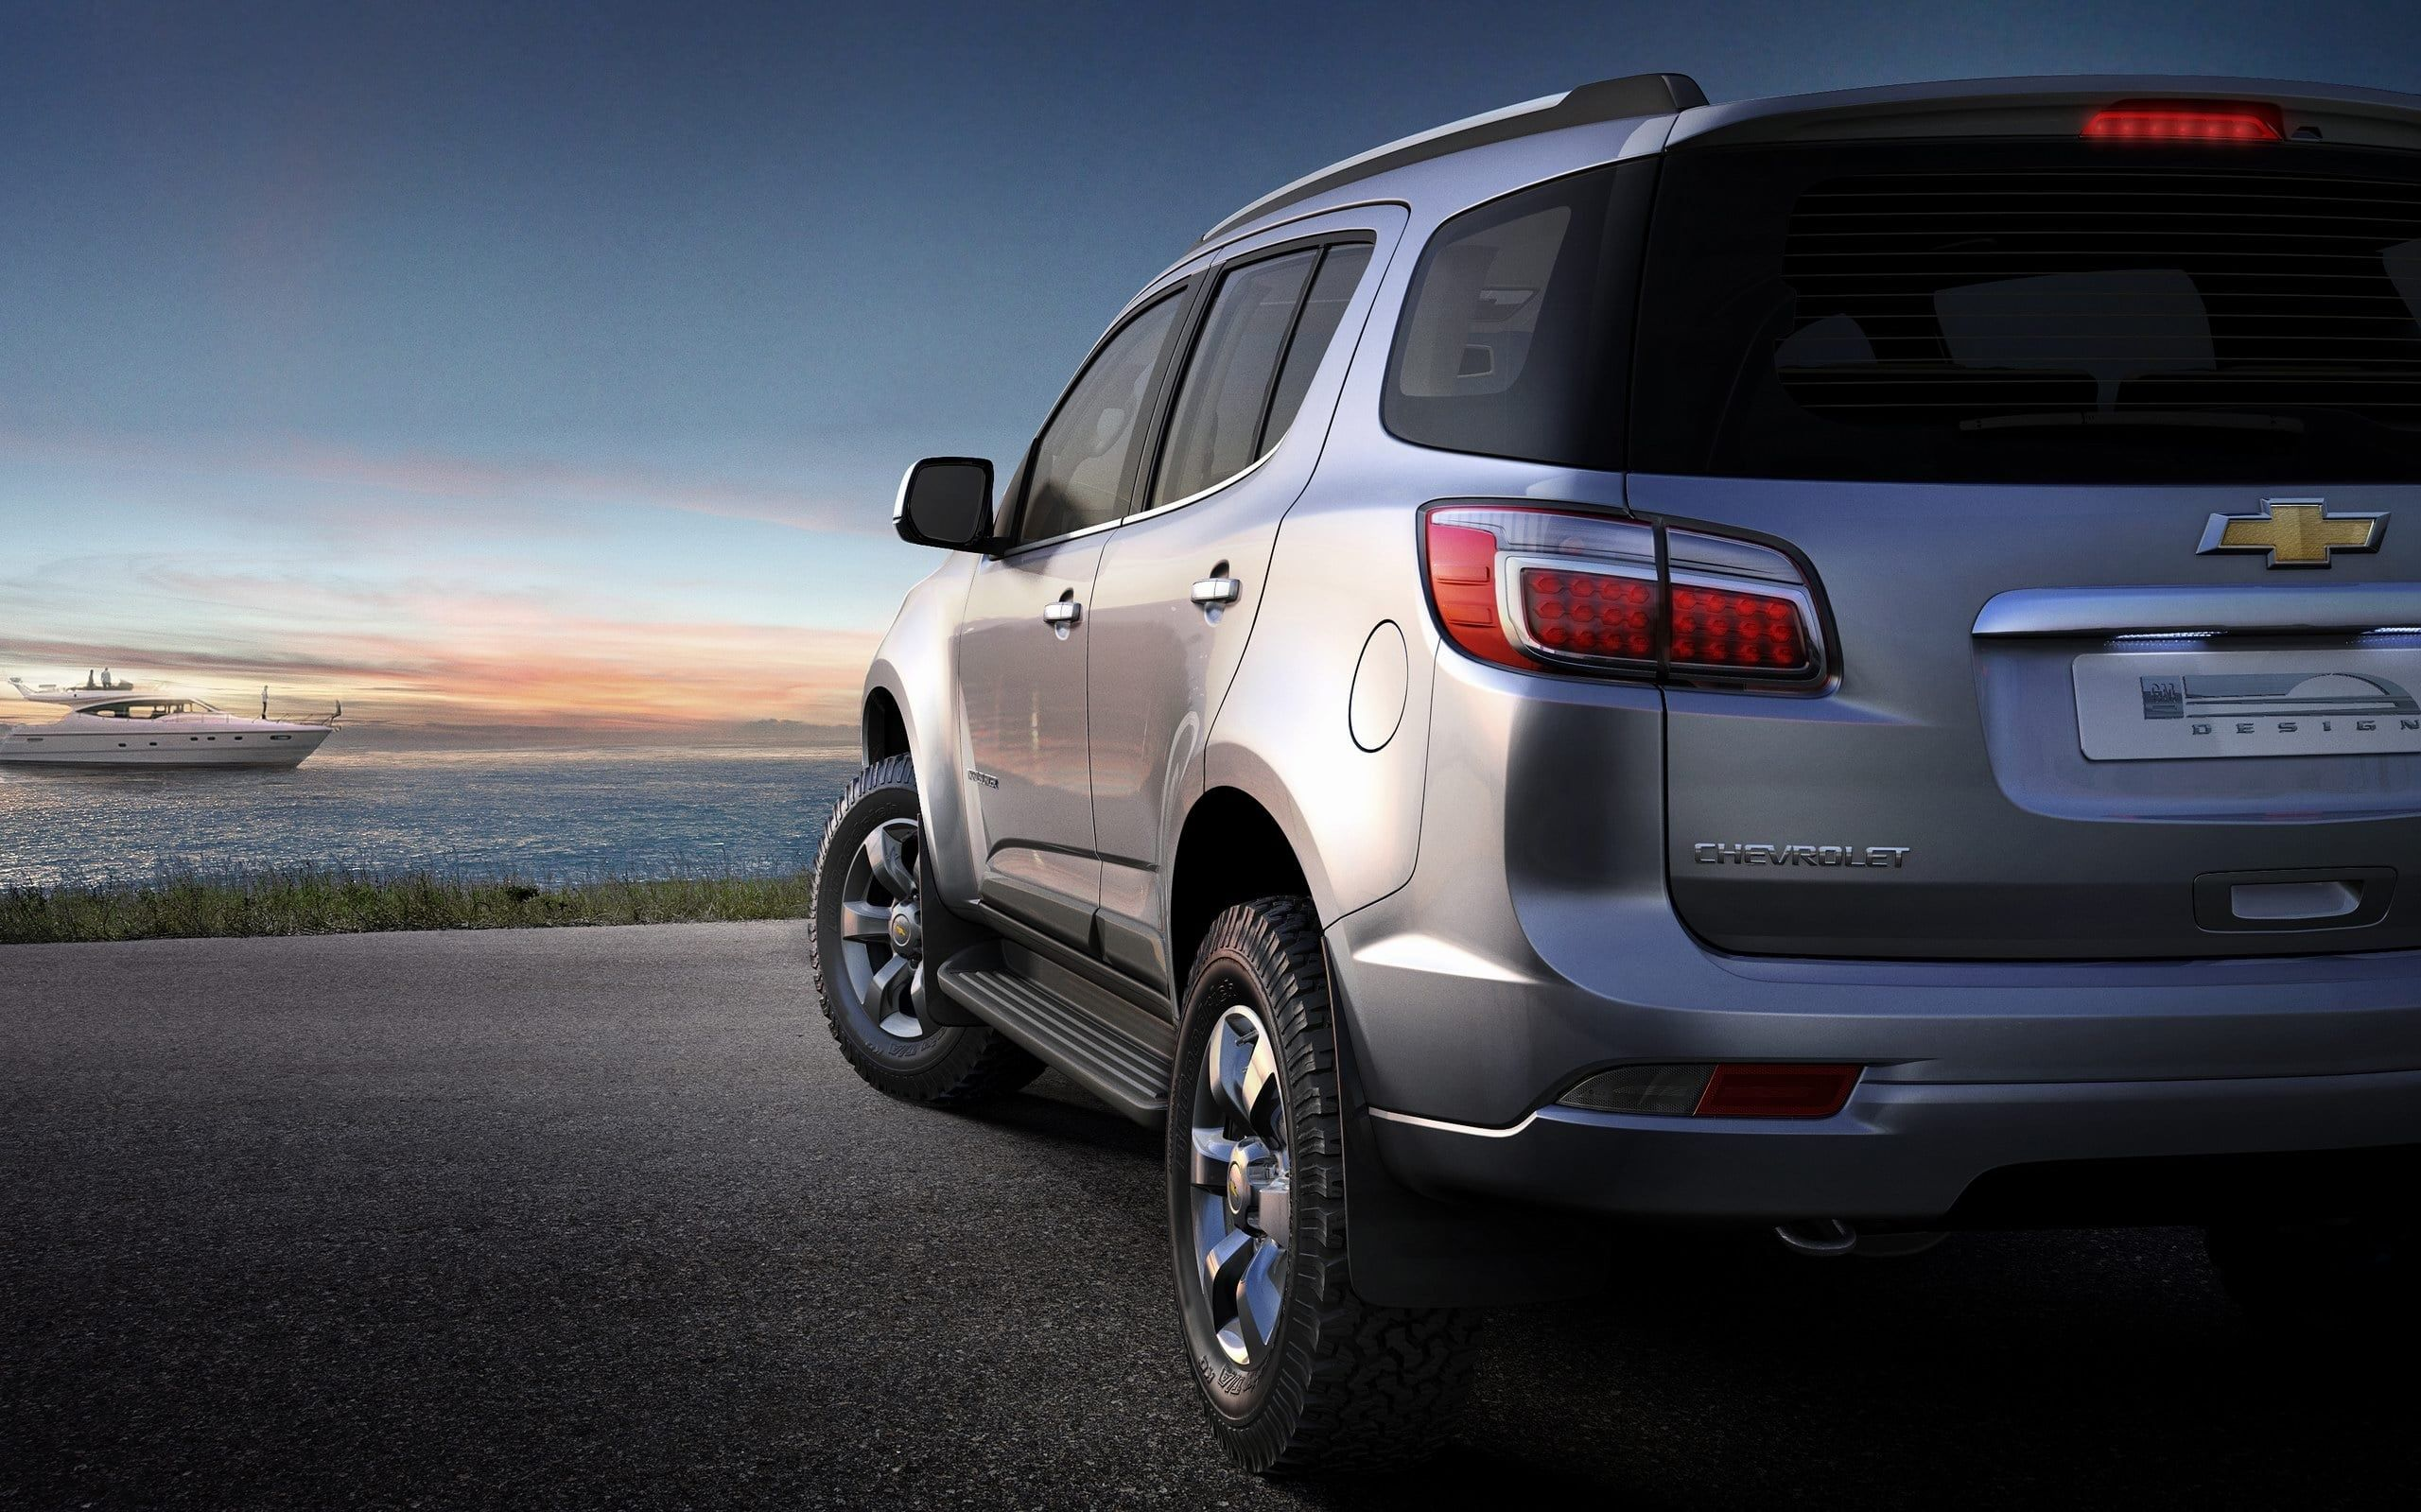 Chevrolet Trailblazer Wallpaper Hd Chevrolet Trailblazer Chevrolet Trailblazer